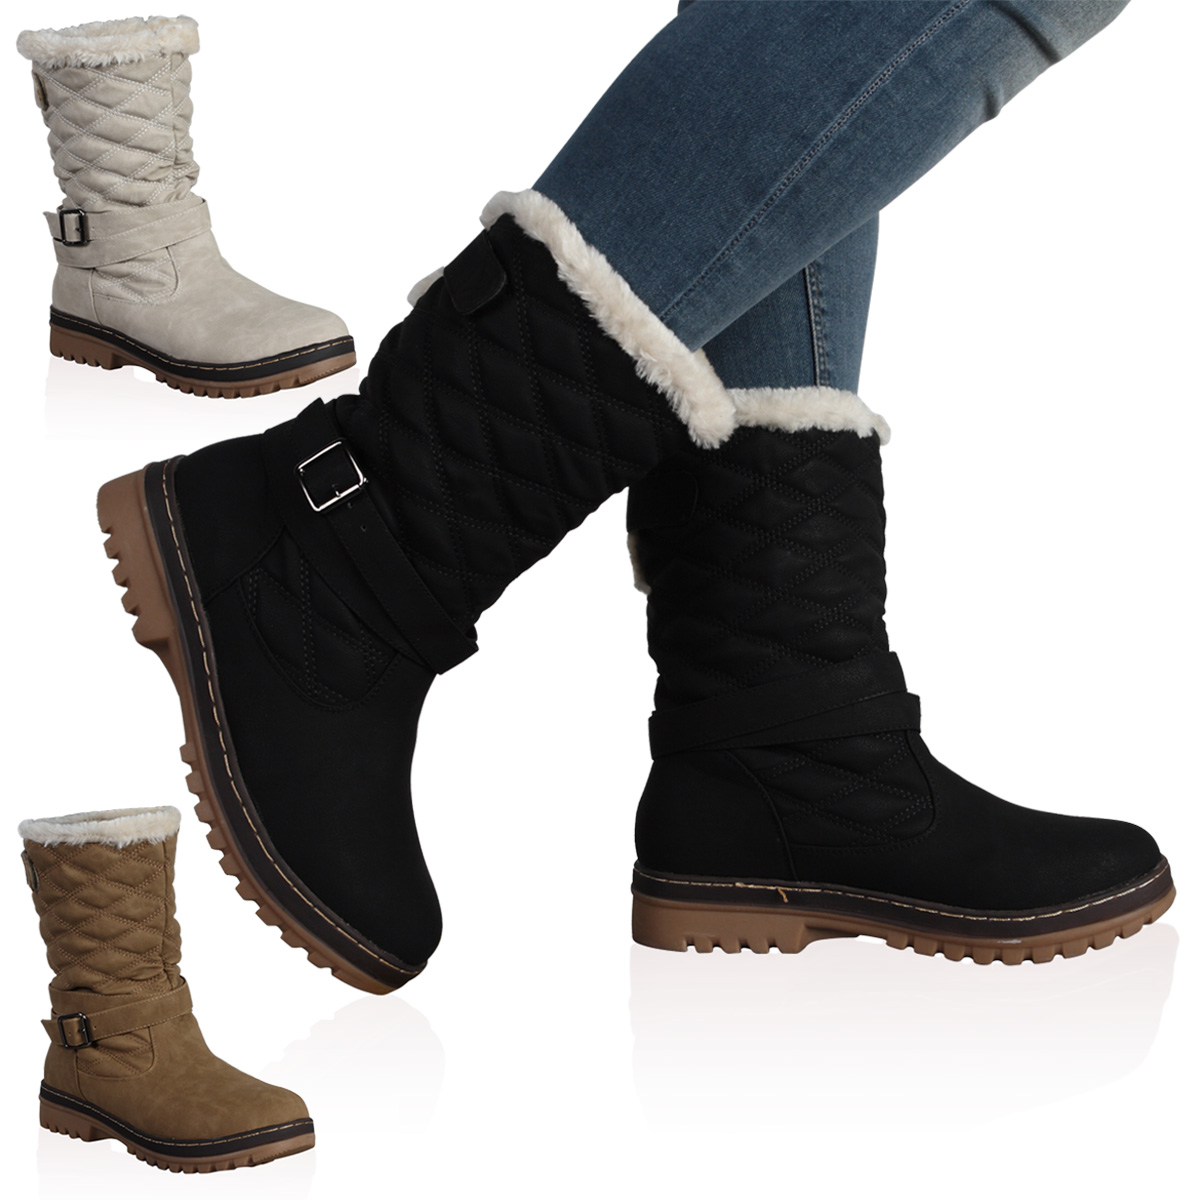 Cheap Womens Winter Boots WupzvBEr